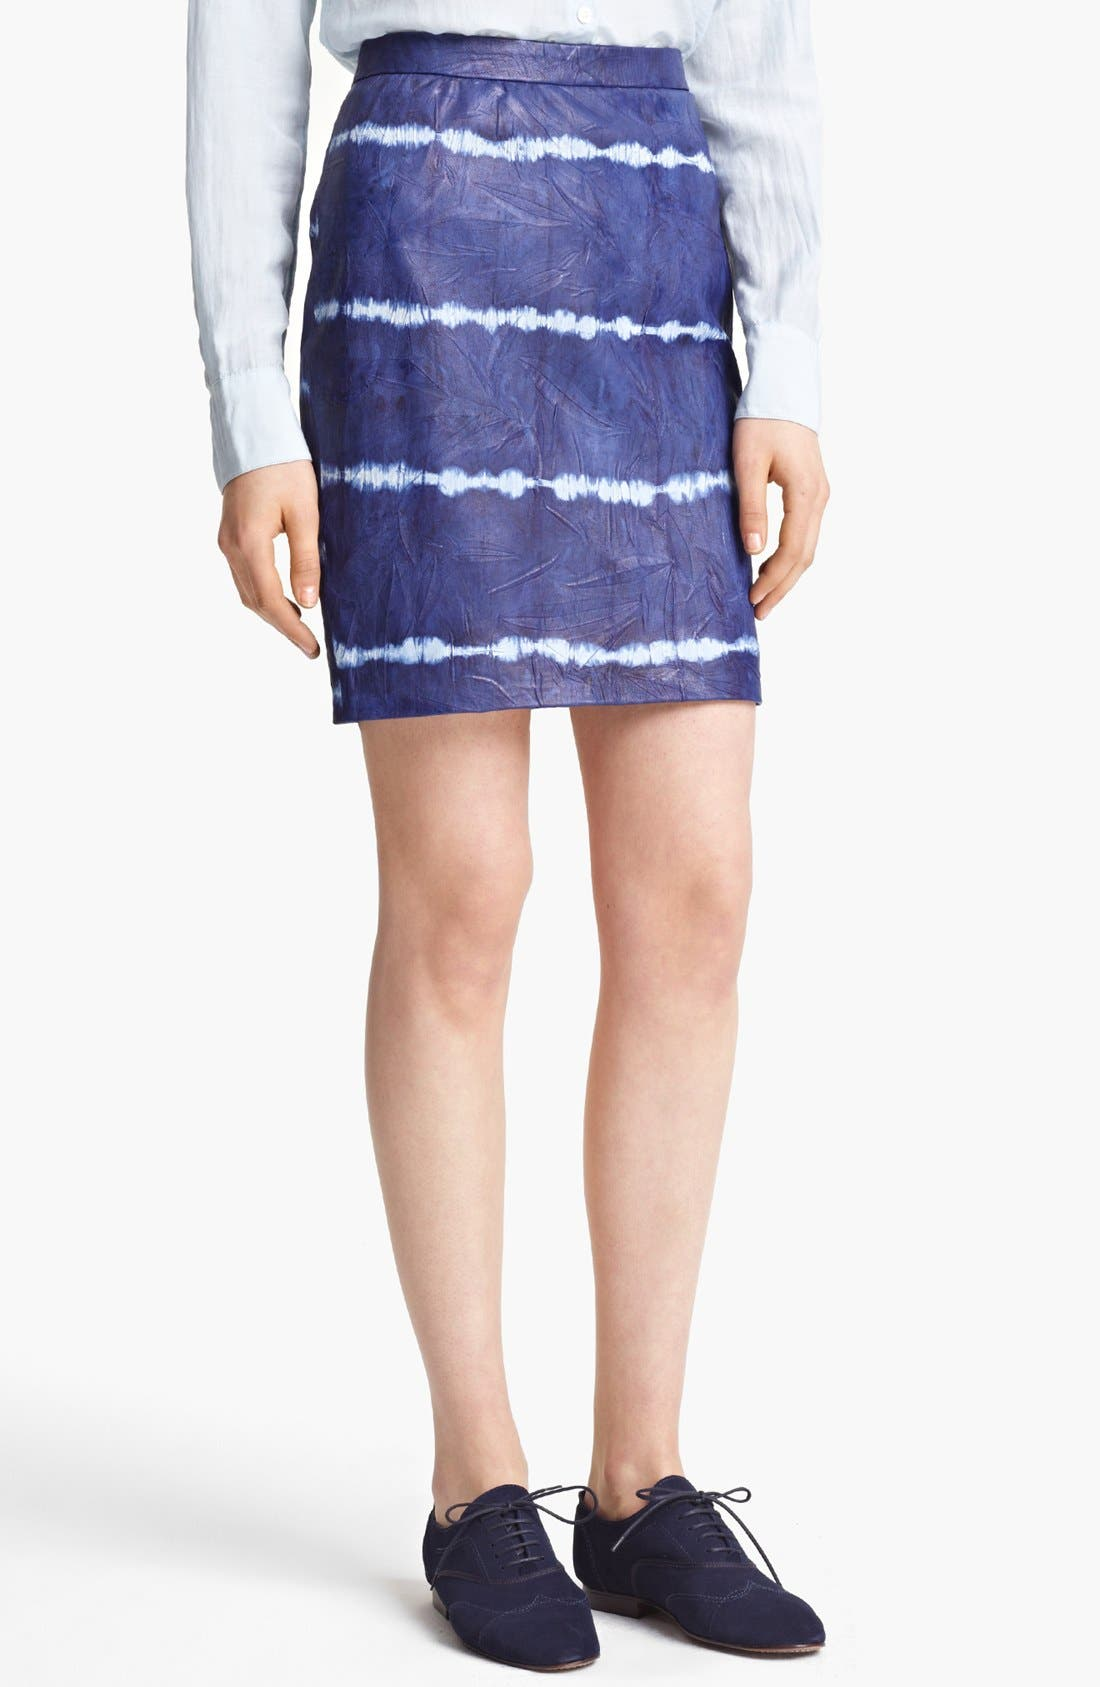 Main Image - Band of Outsiders Tie Dye Leather Skirt